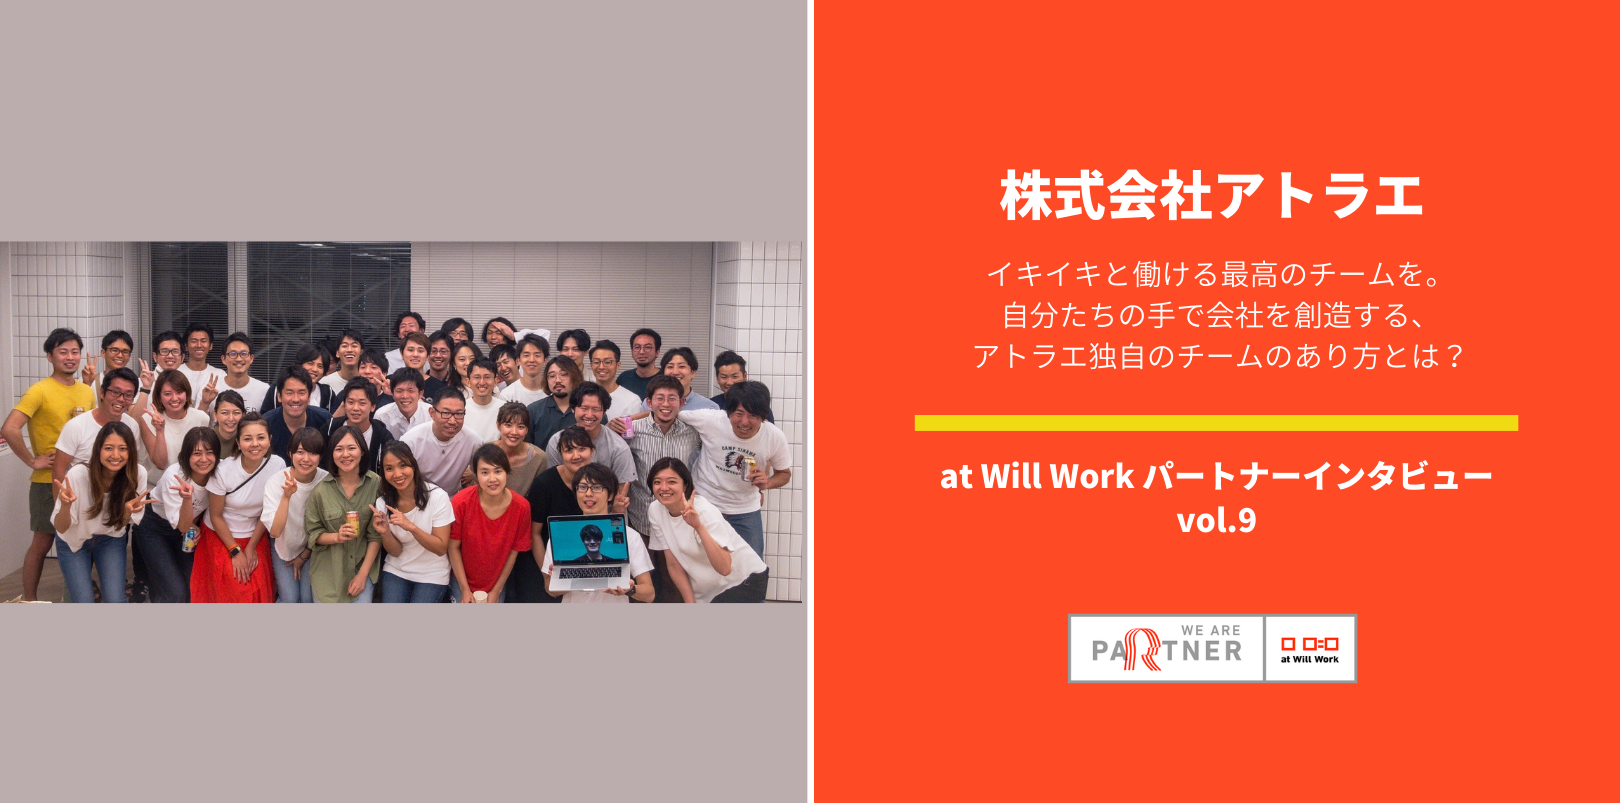 at Will Work パートナーインタビューvol.9.png